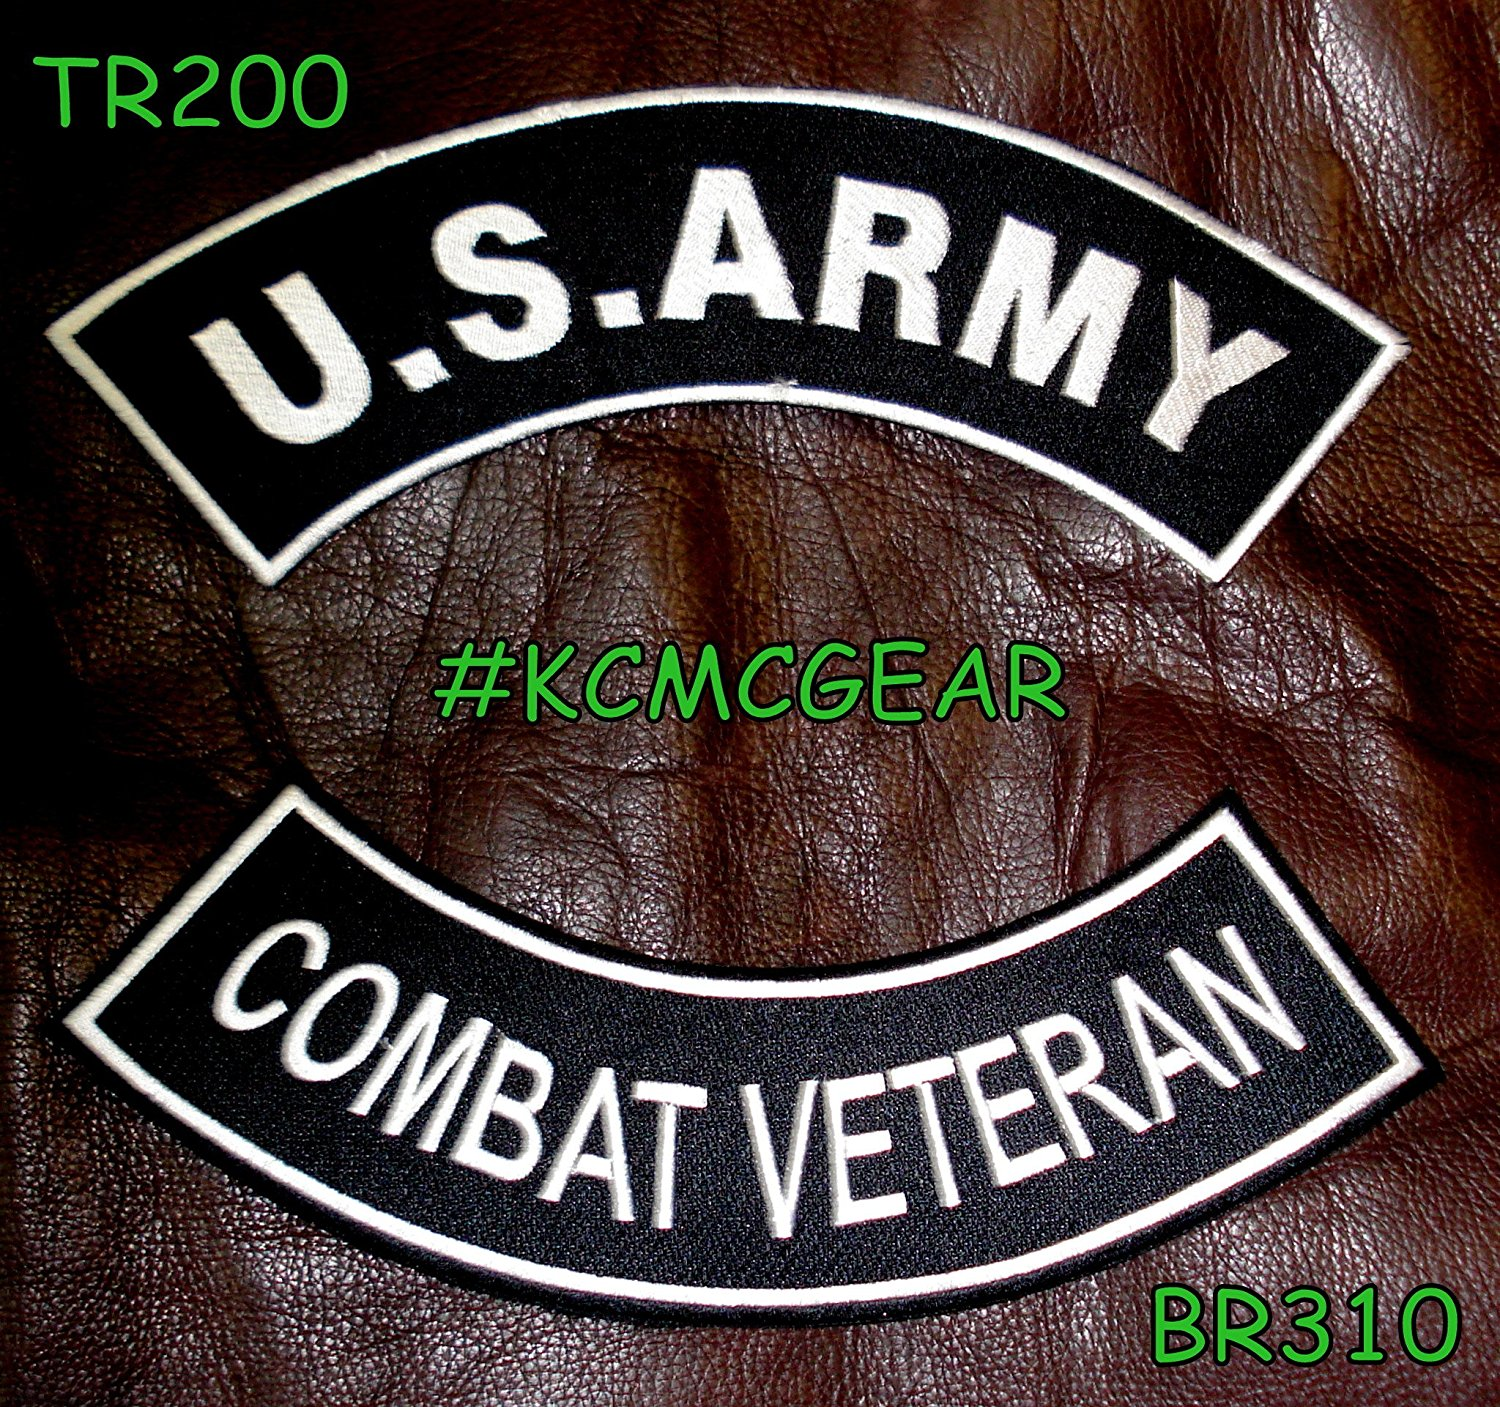 U.S. Army Combat Veteran Military Patch Set Embroidered Patches Sew on Patches for Jackets